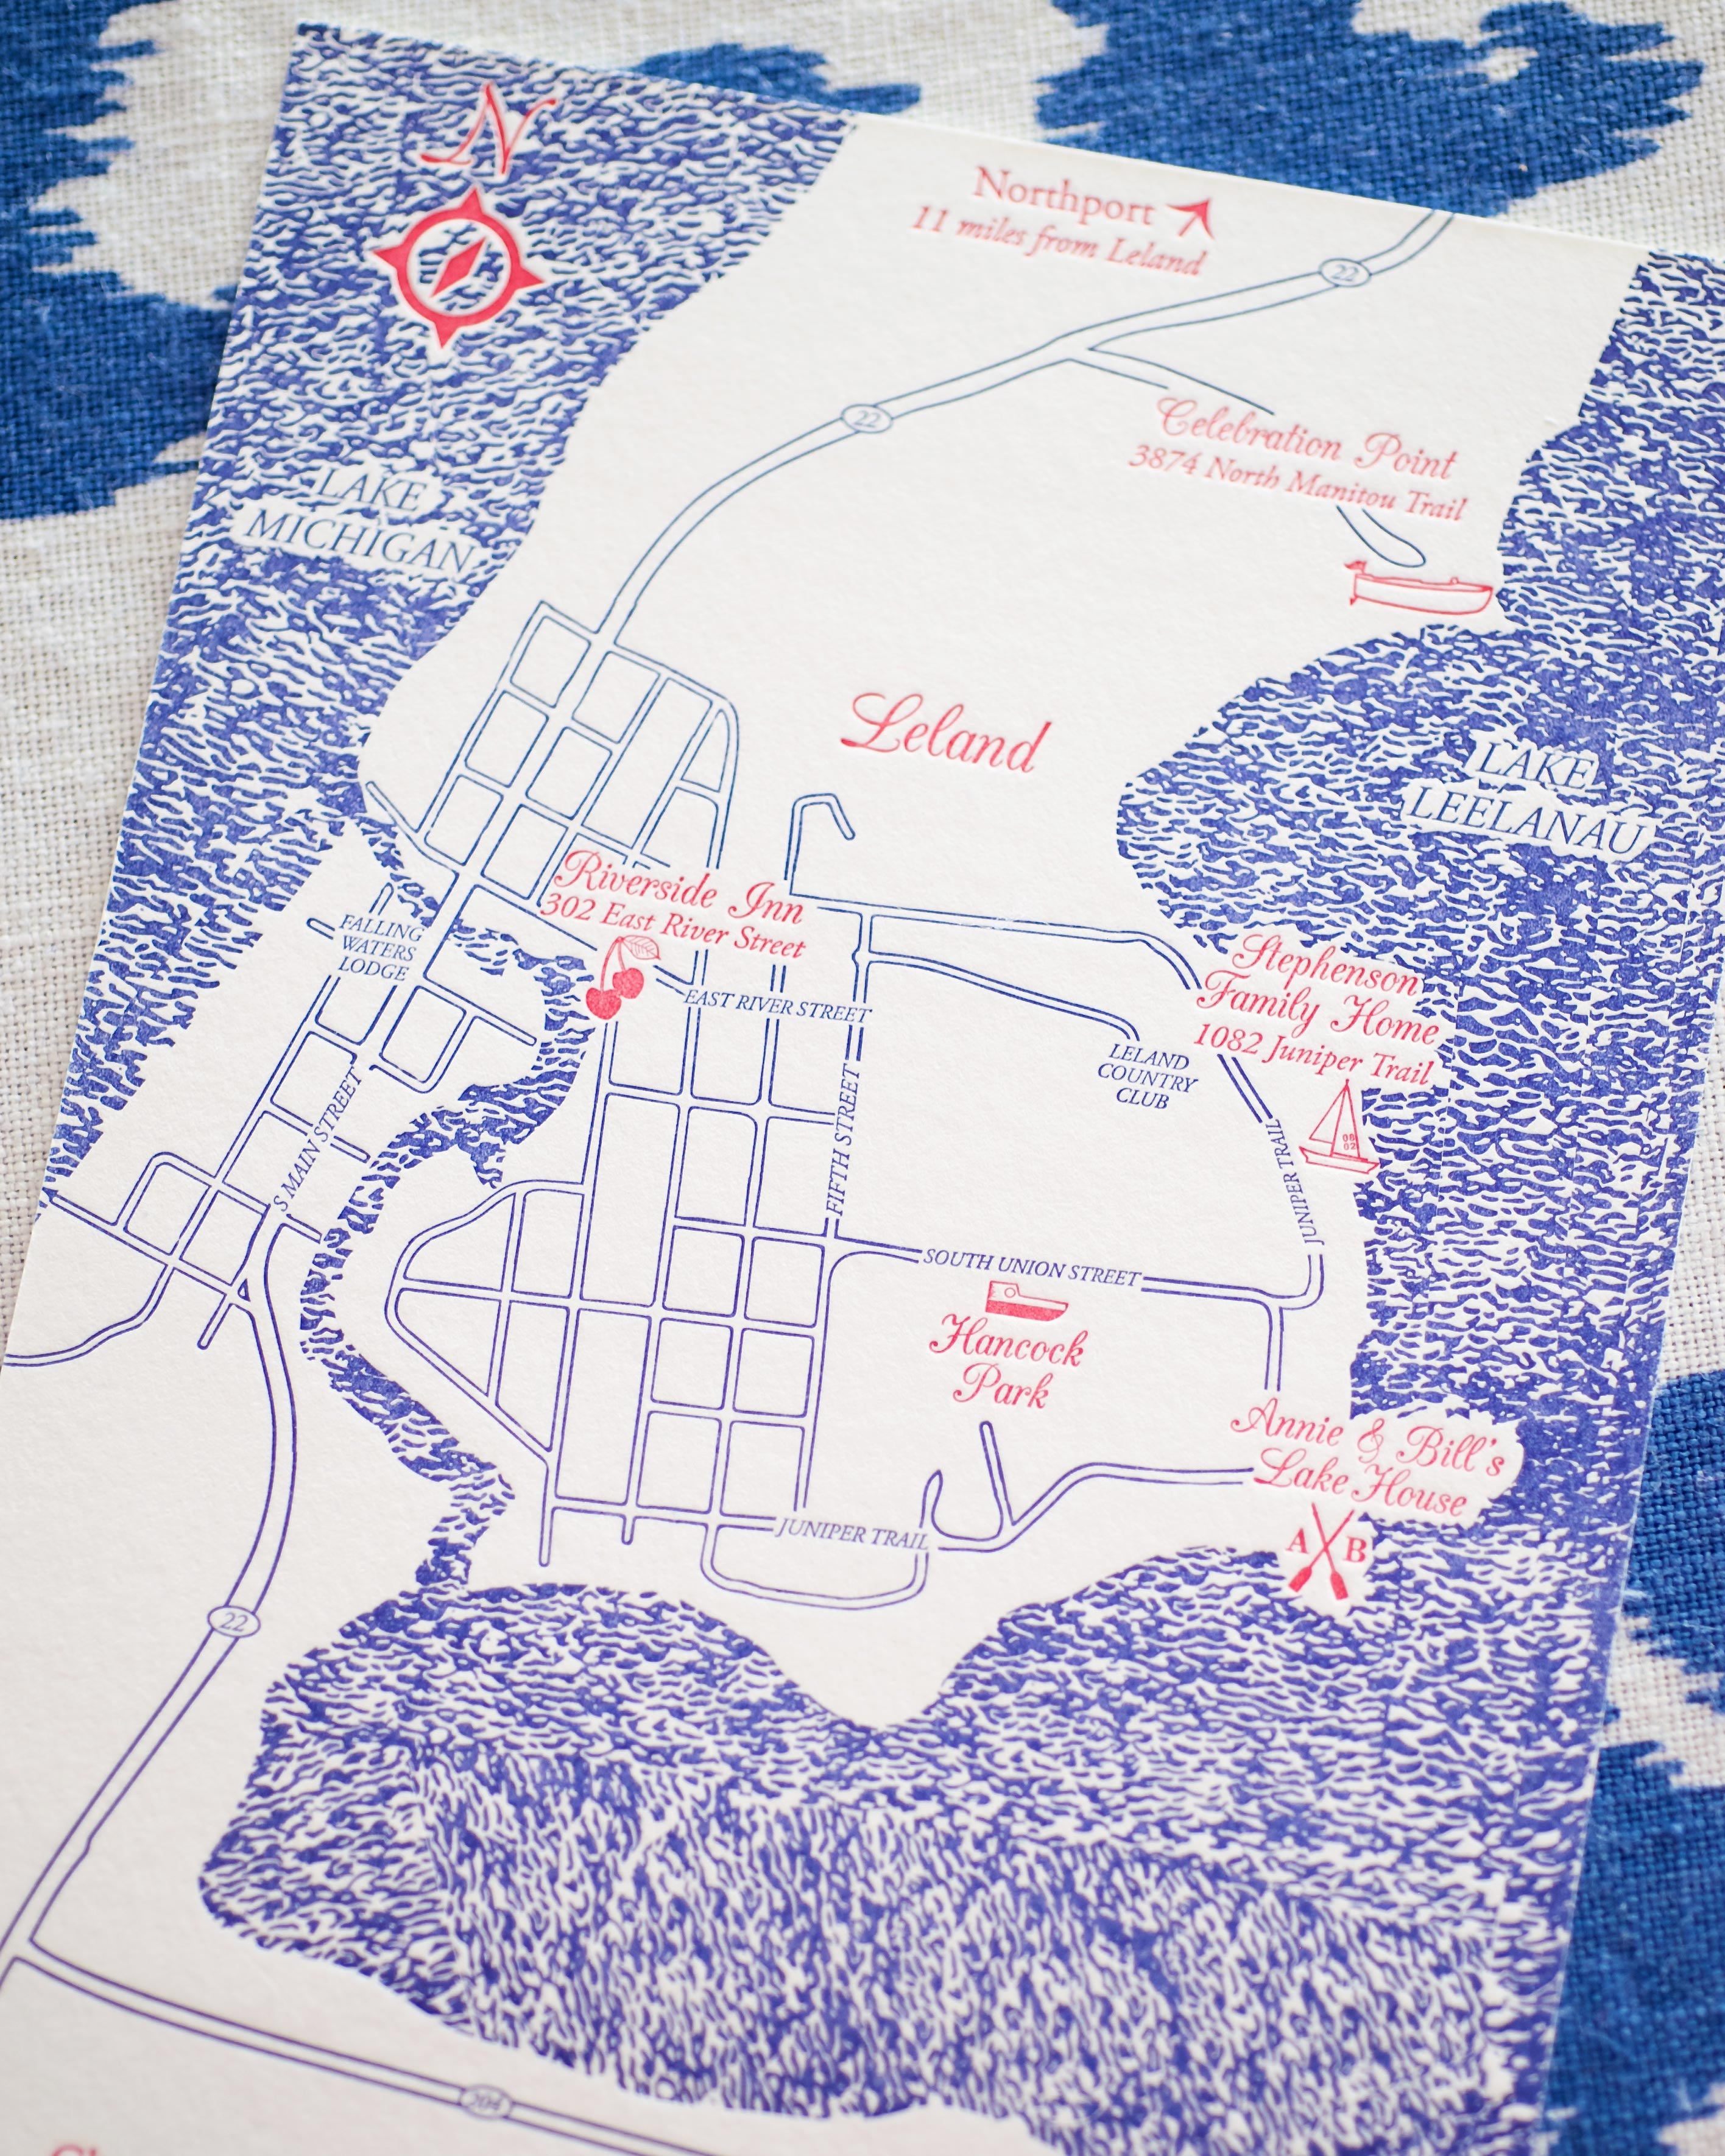 map-it-out-a-day-in-may-0616.jpg